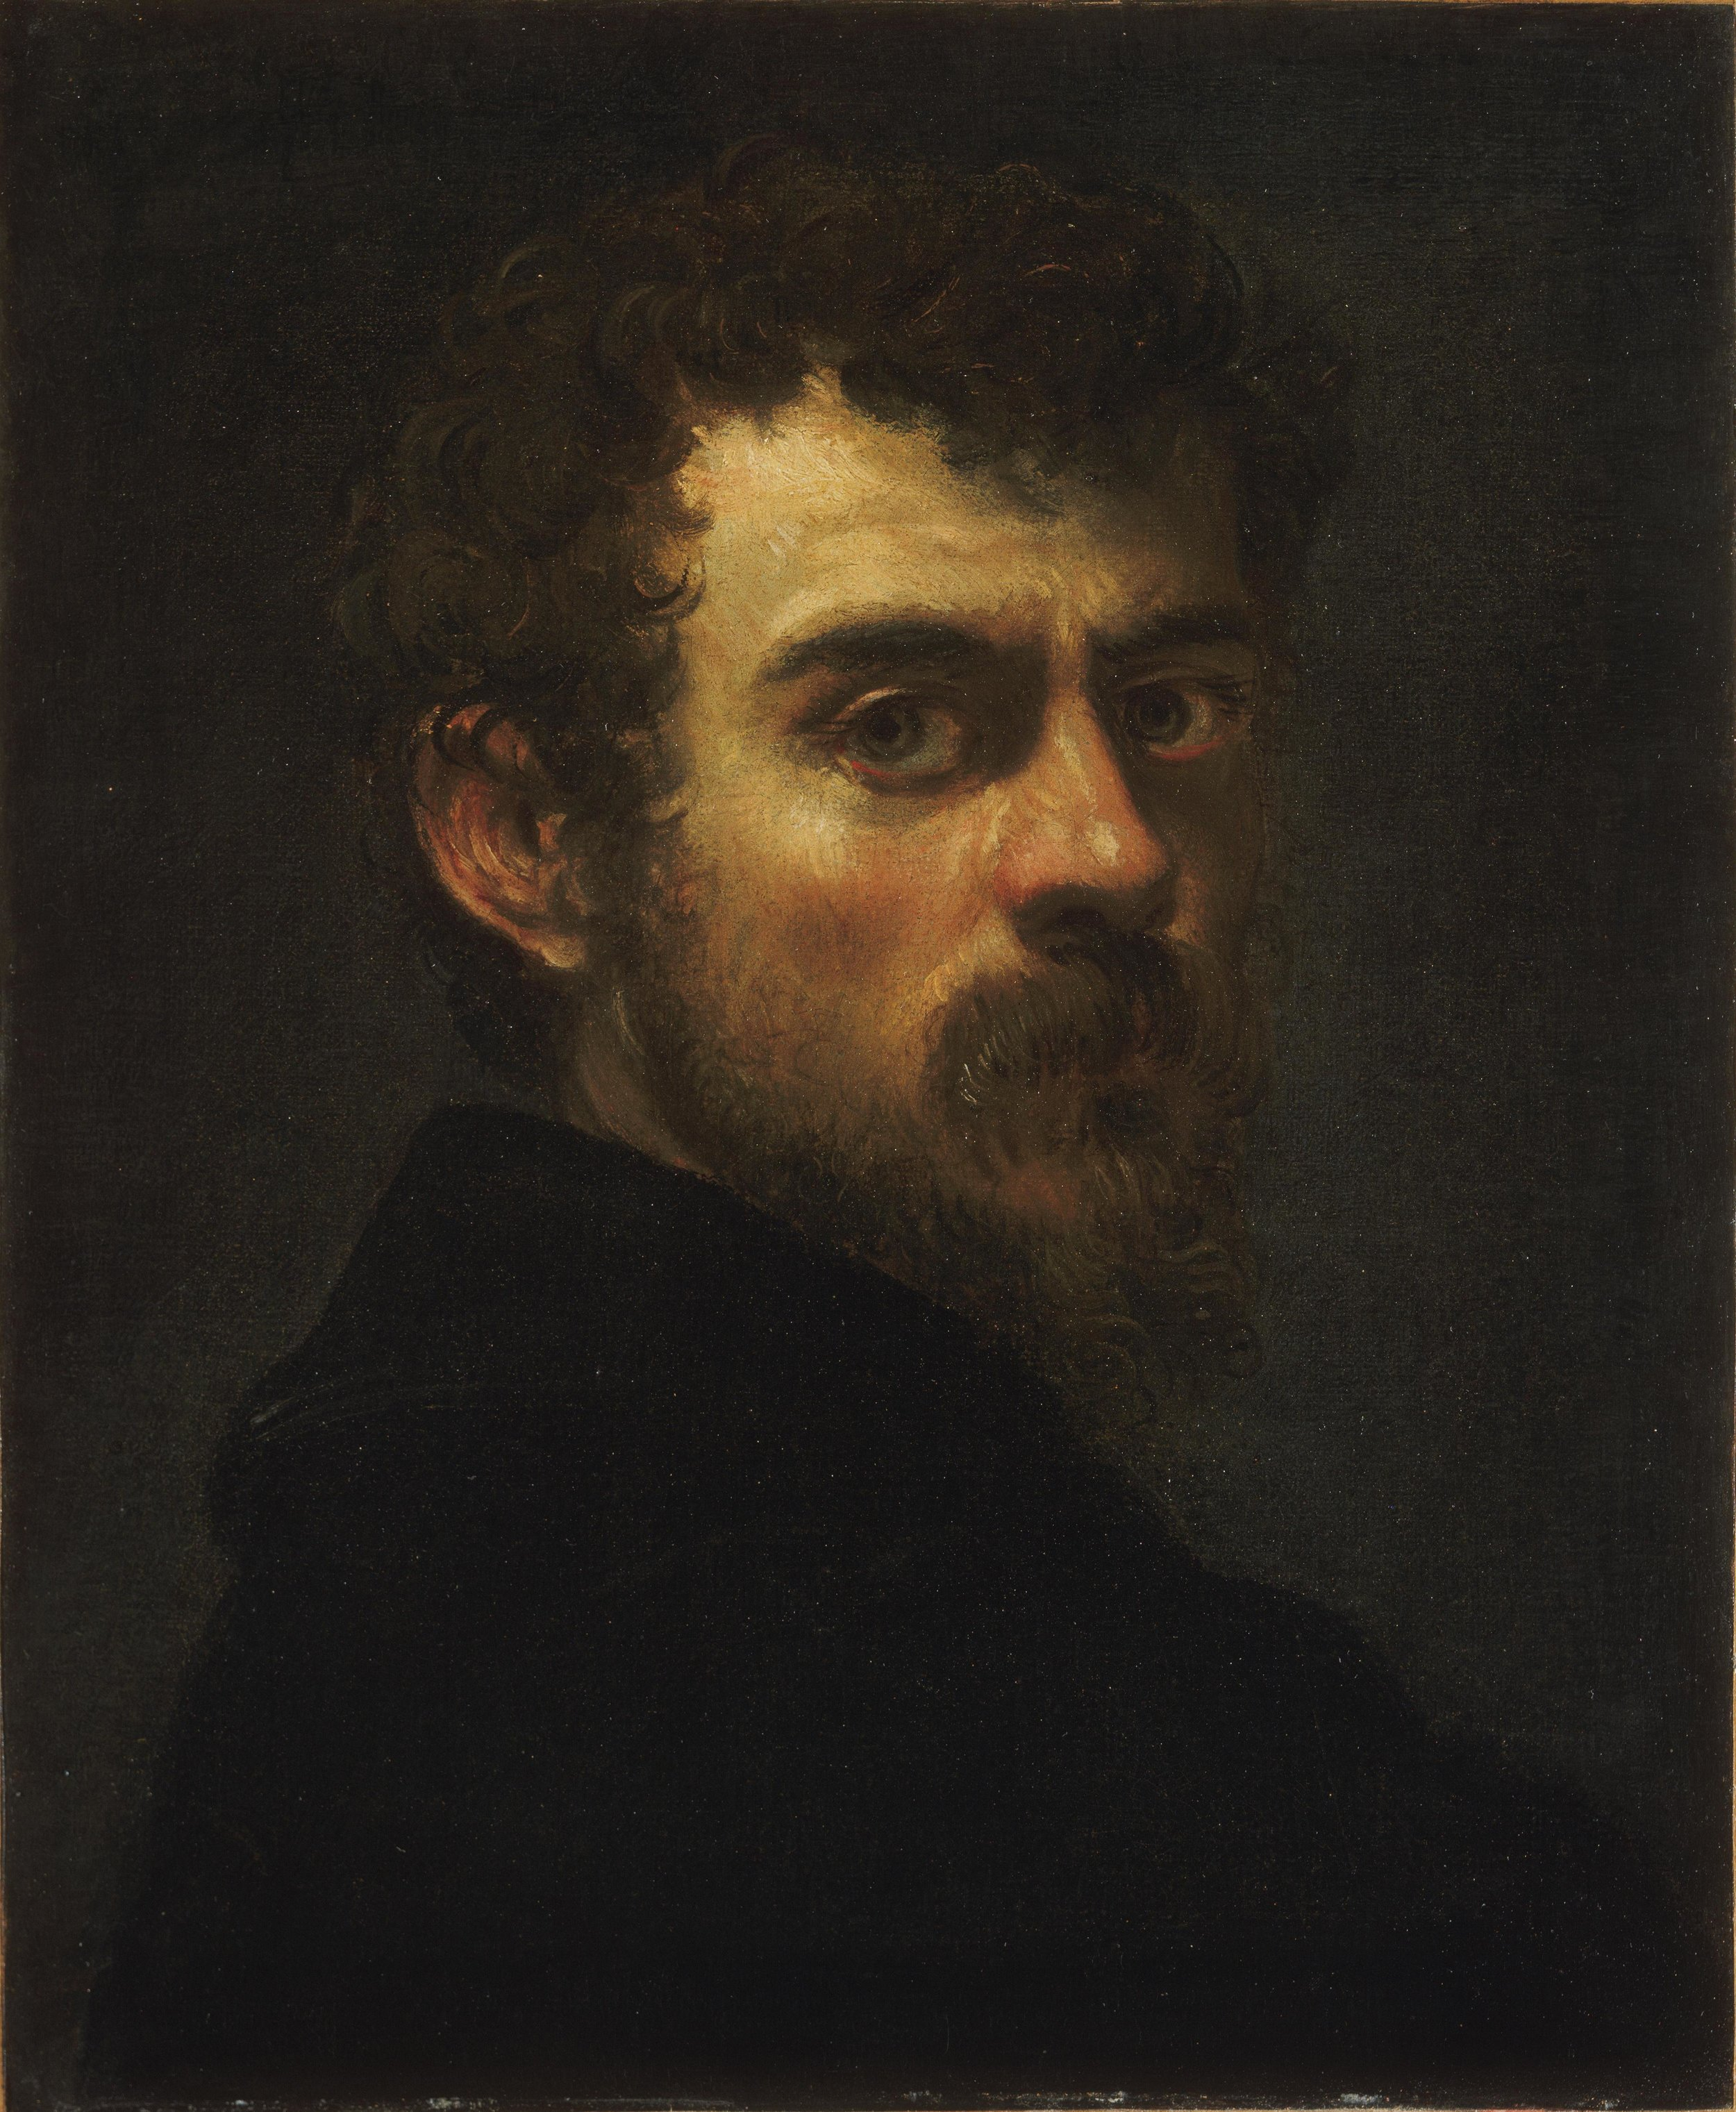 Self-Portrait, Tintoretto, Philadelphia Museum of Art, now on view at the National Gallery